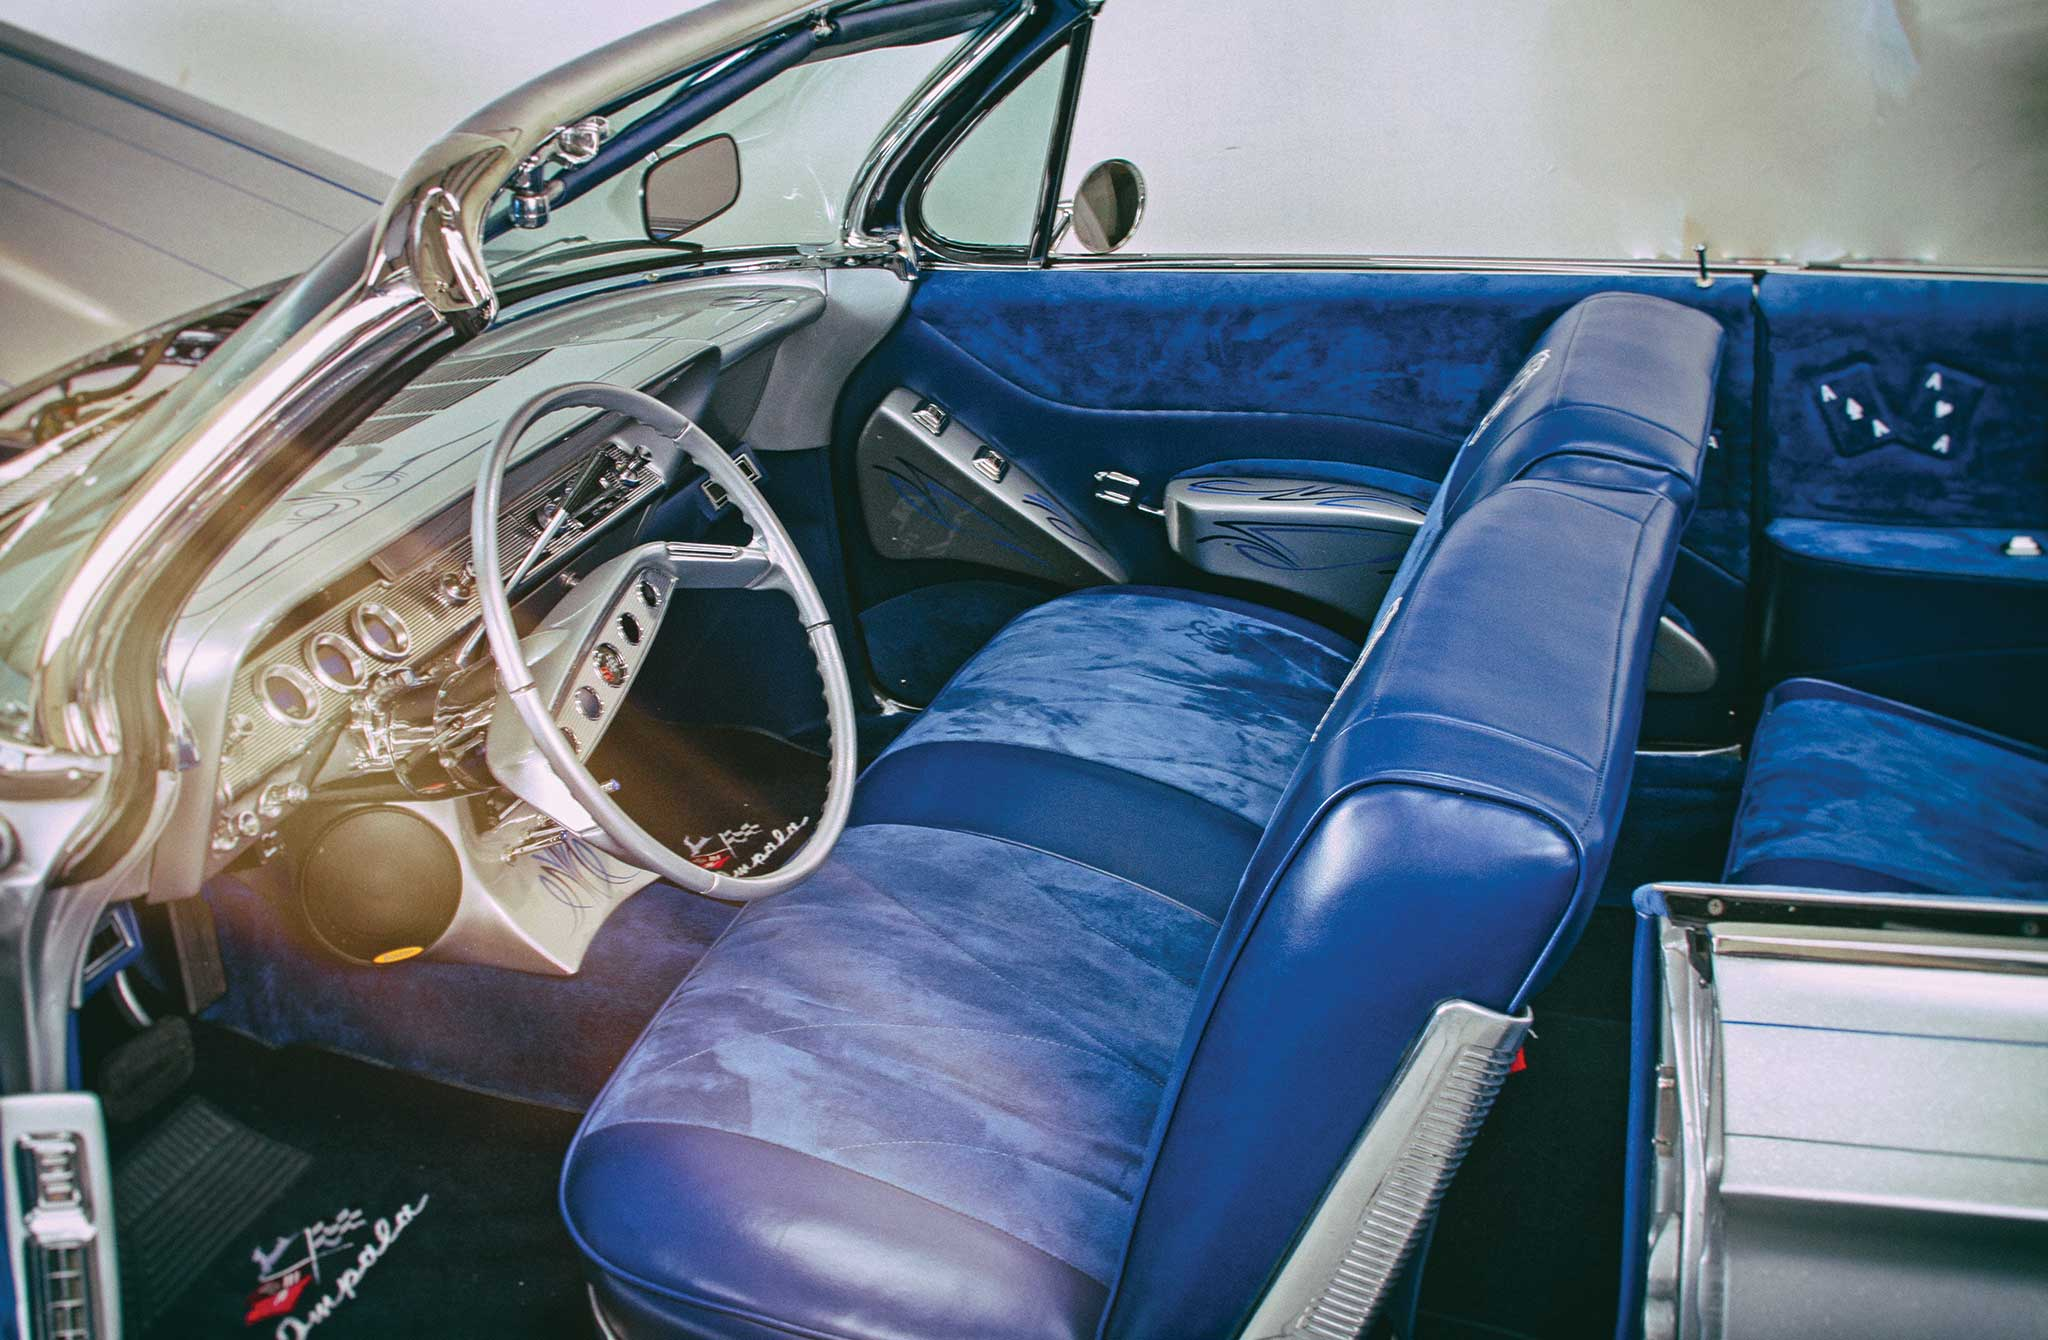 1961 Chevrolet Impala Convertible Aces Low Lowrider